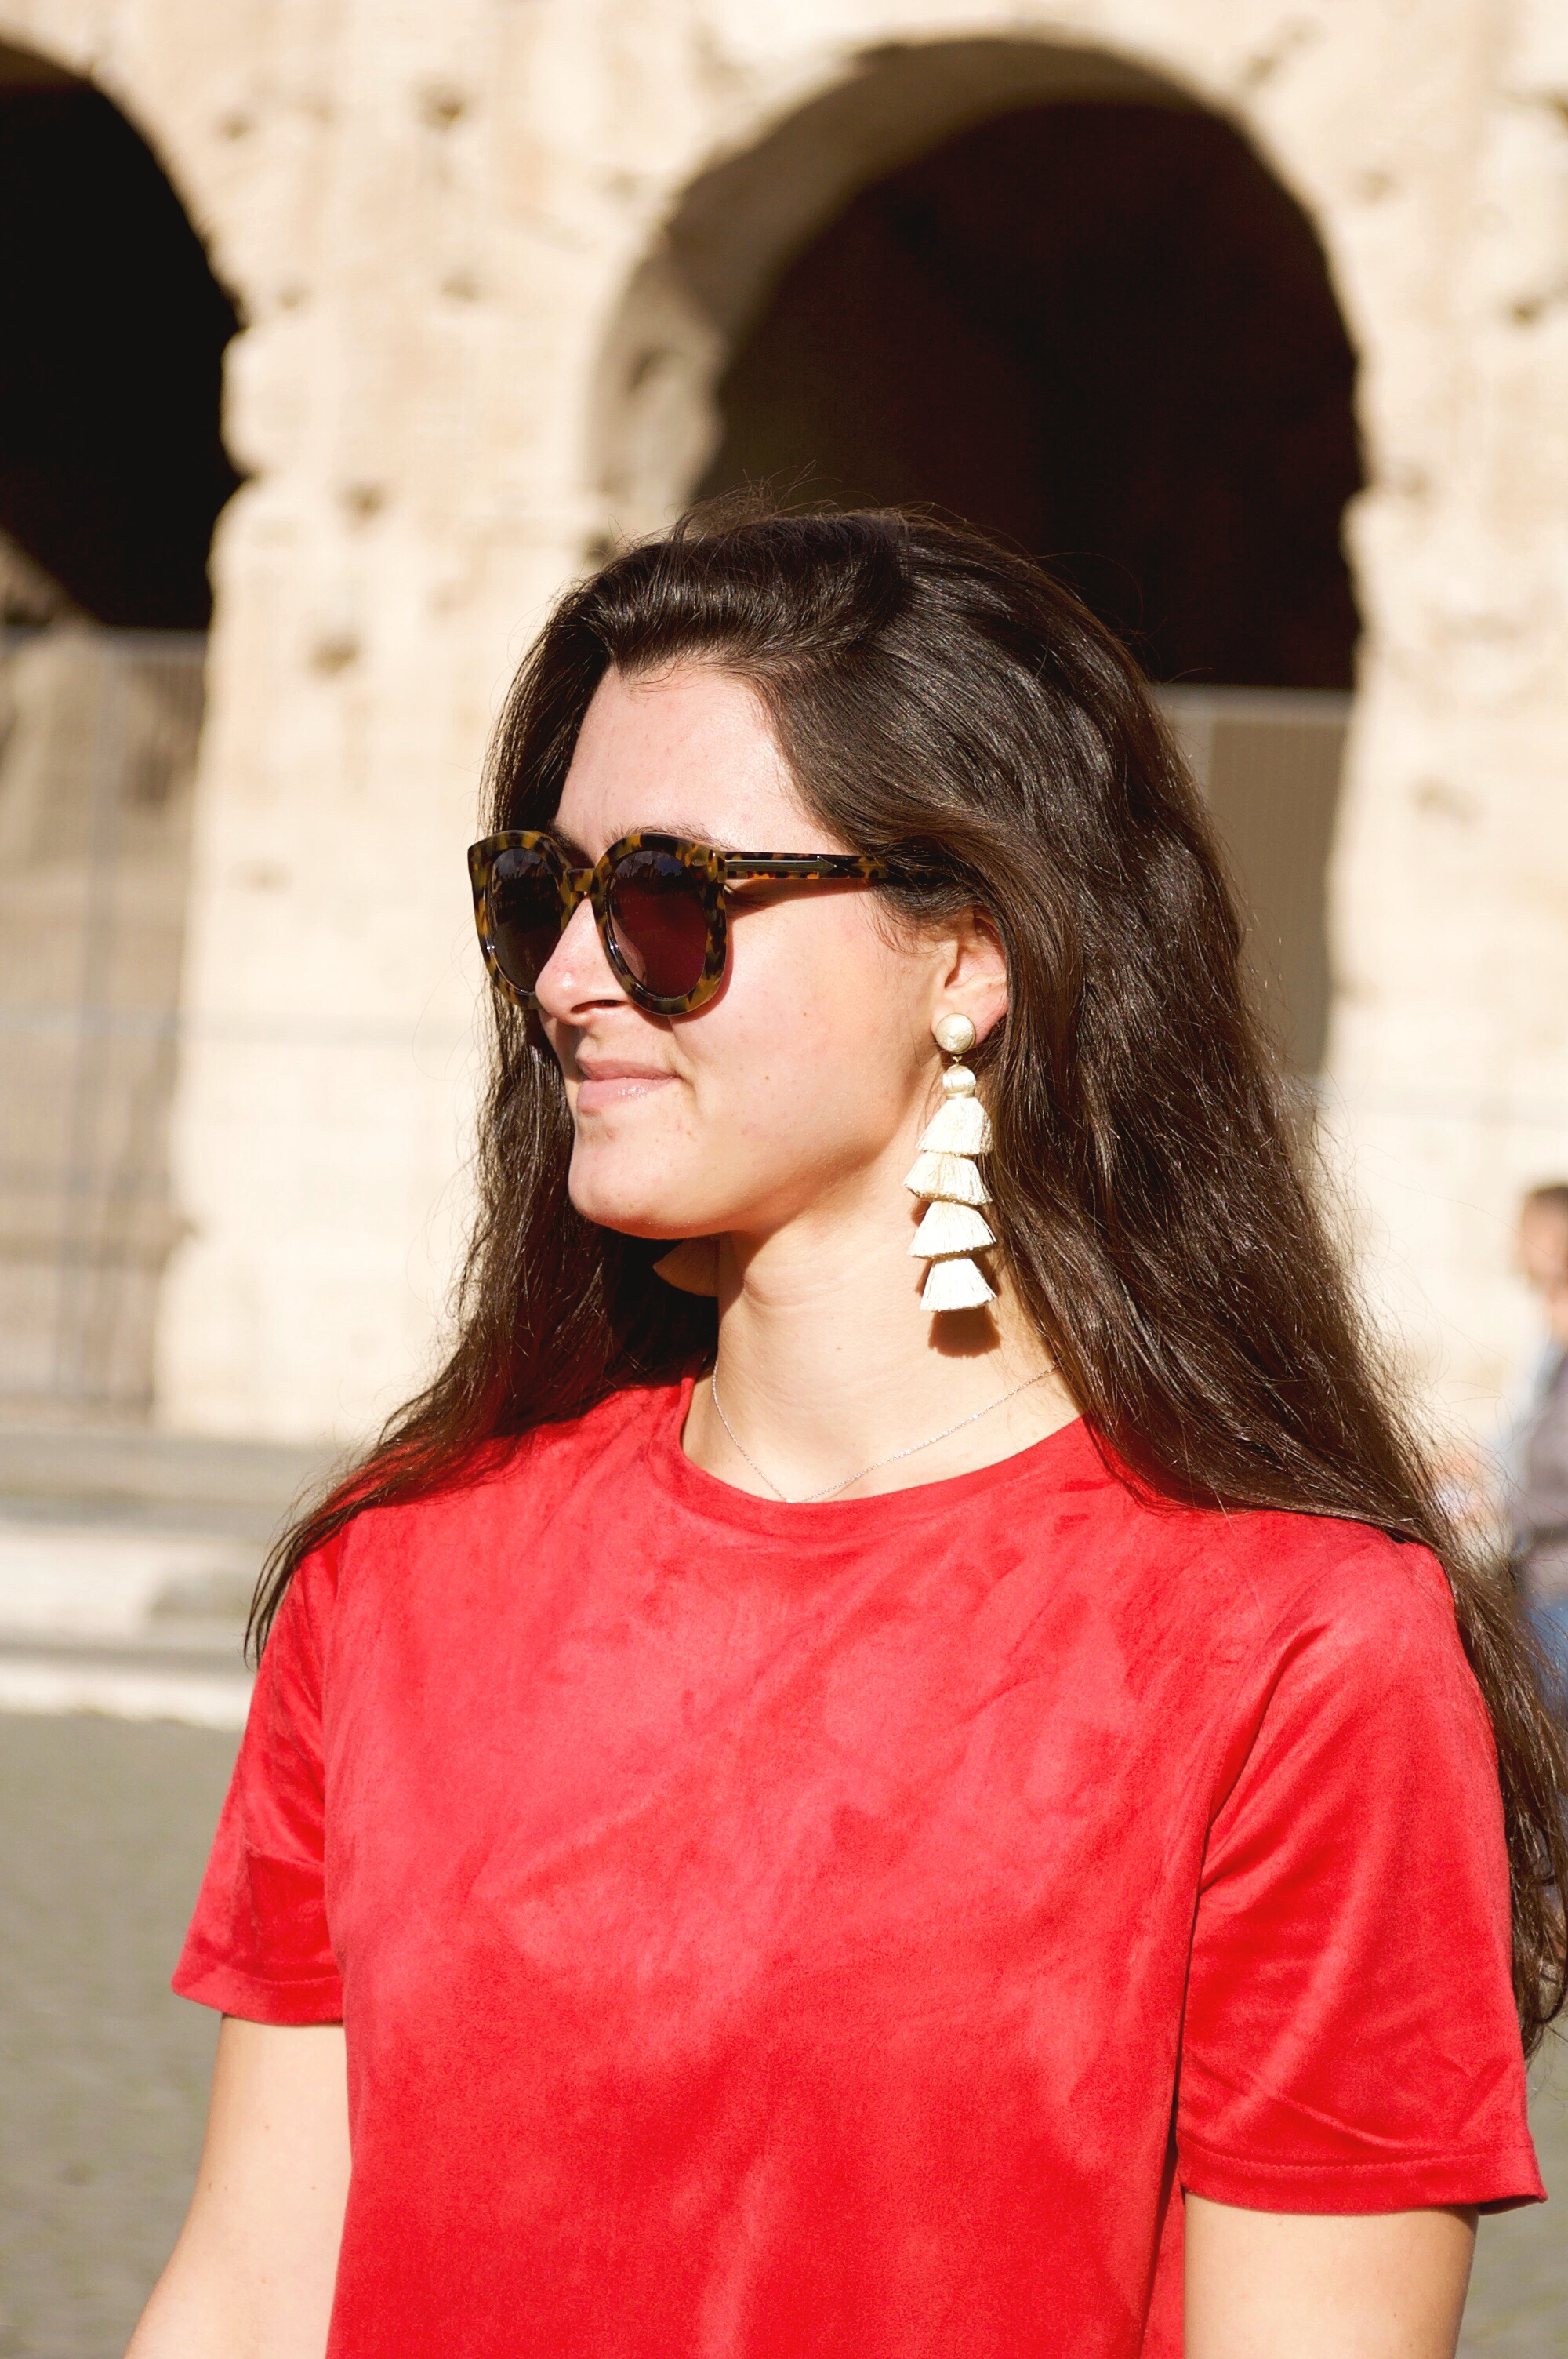 Rome, Italy 11.08.17  Feelin' all the Lizzie McGuire vibes in Rome this week! Whenever I'm in Italy, I feel the need to wear red. Since Christmas is around the corner, I collected my favorite red dresses under $100, as well as my favorite tassel BaubleBar earrings!  Check out my picks here!